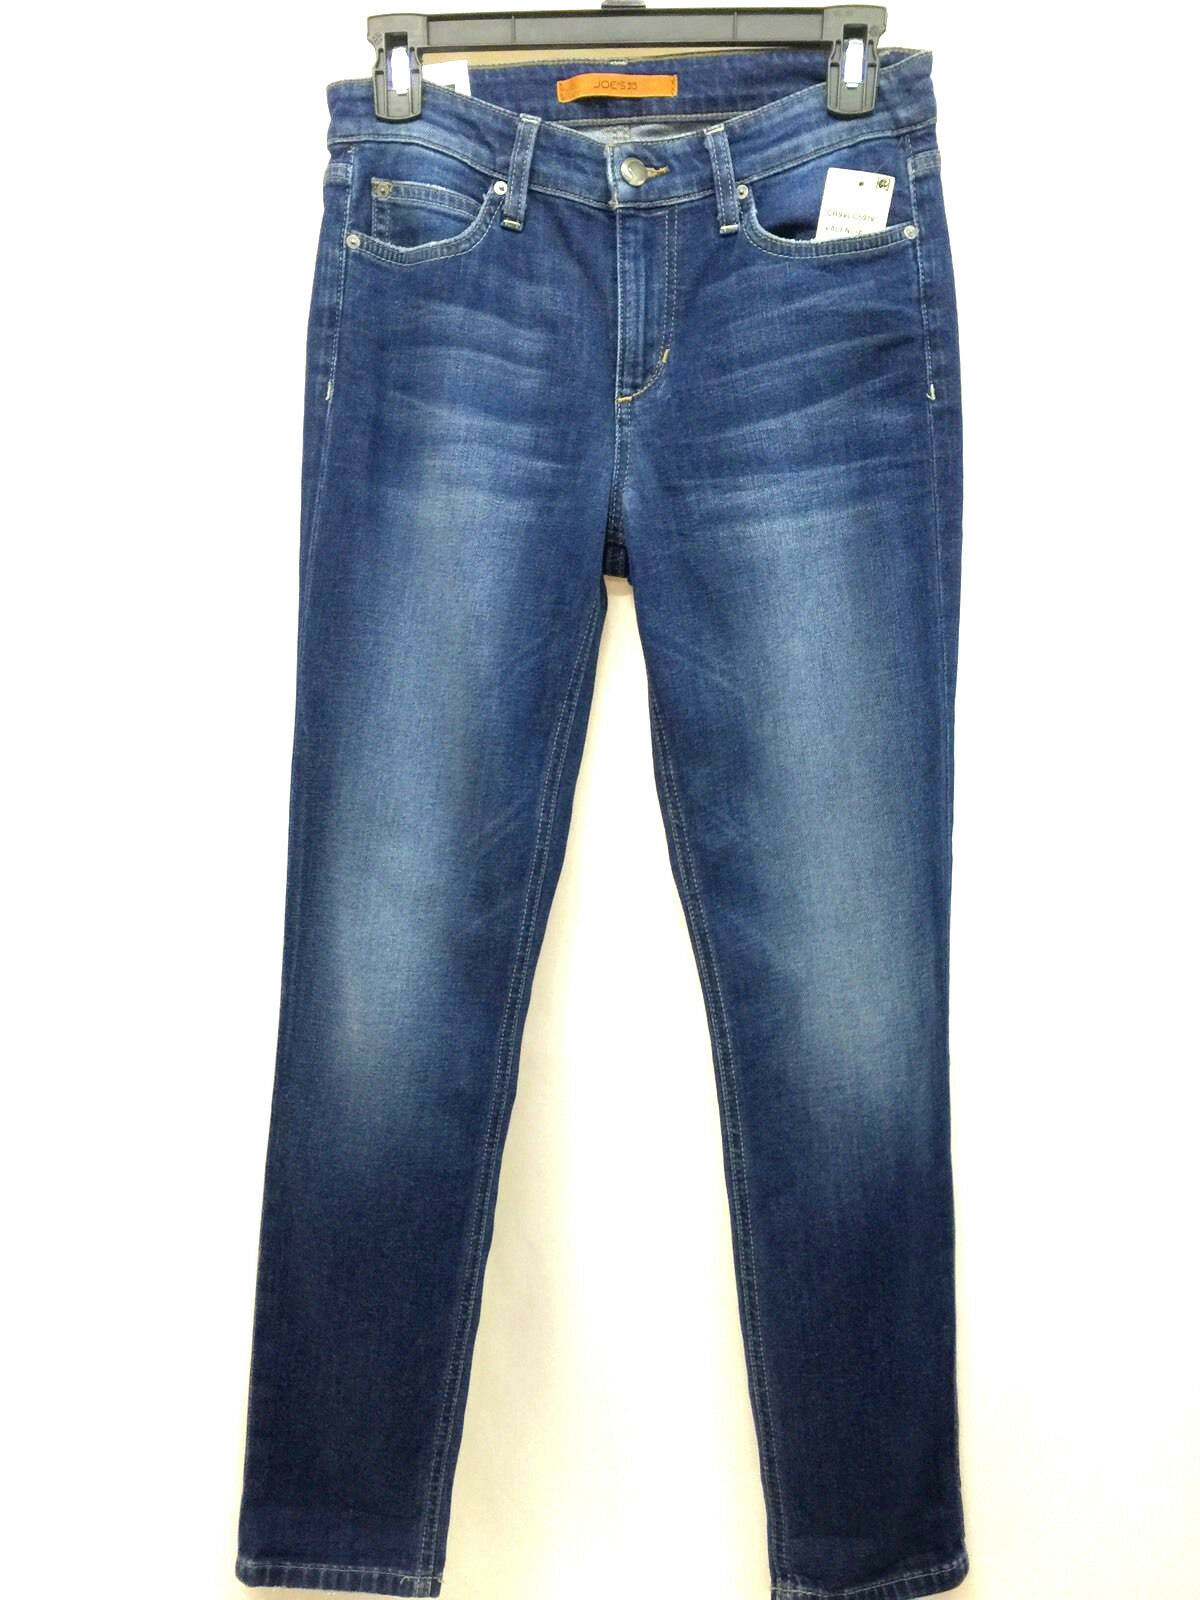 JOES JEANS ROLLED SKINNY CROP JEANS VALENCIA NAVY SIZE 27 & 32 MyAFC